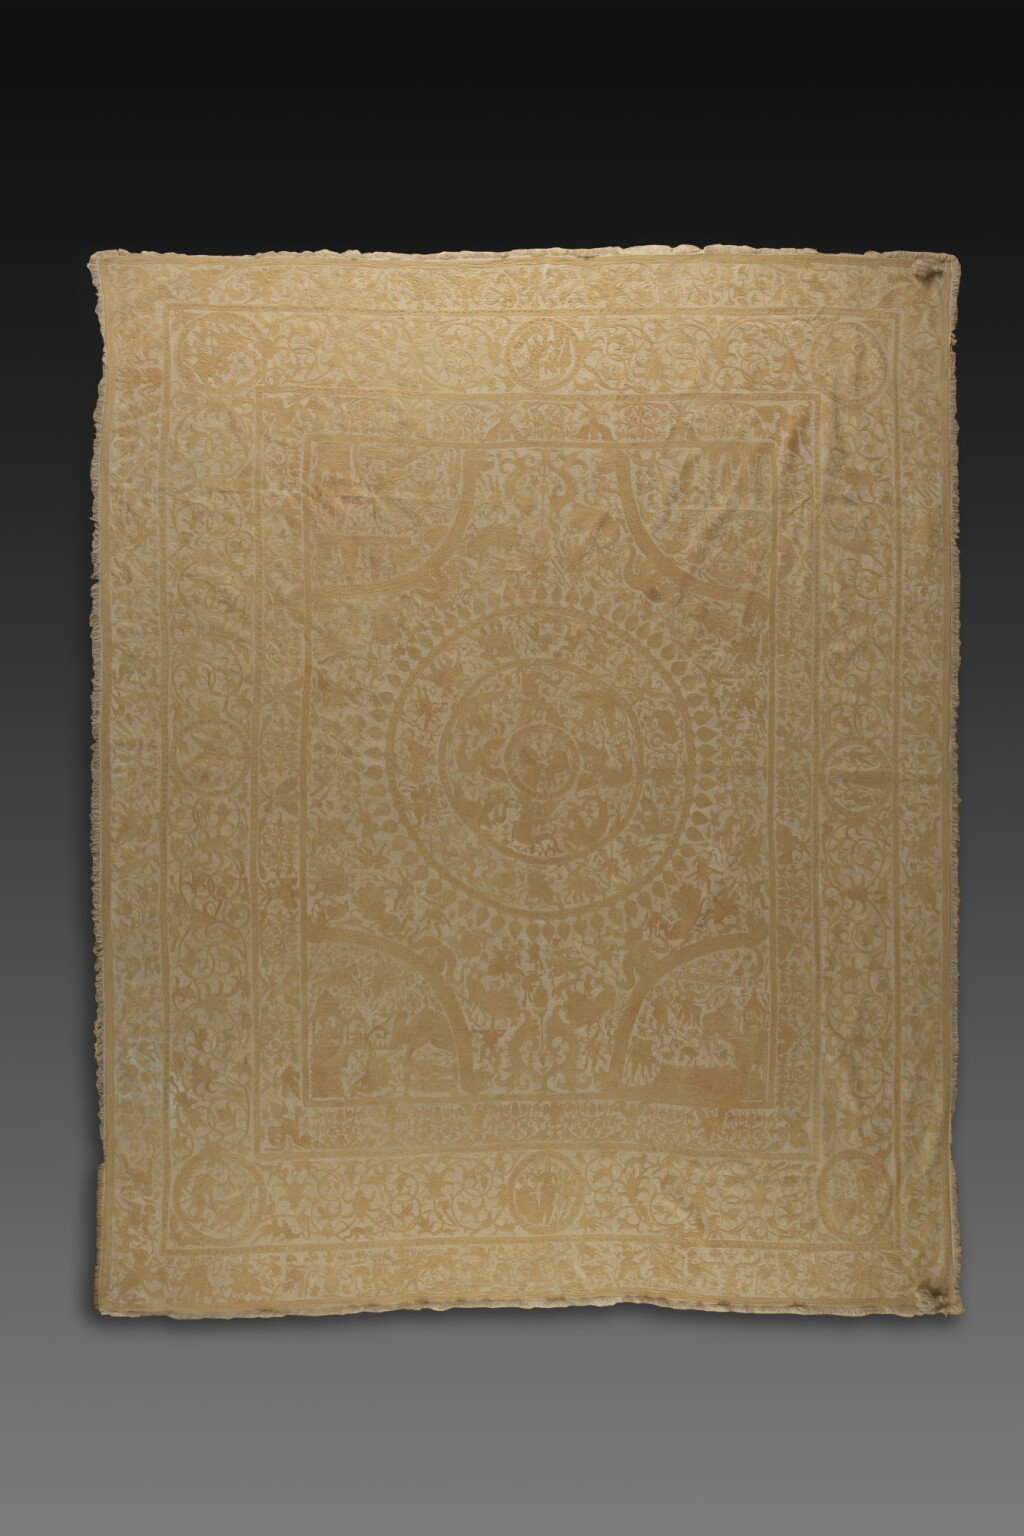 INDO-PORTUGUESE, BENGAL, FIRST HALF 17TH CENTURY | EMBROIDERED COVERLET (COLCHA)